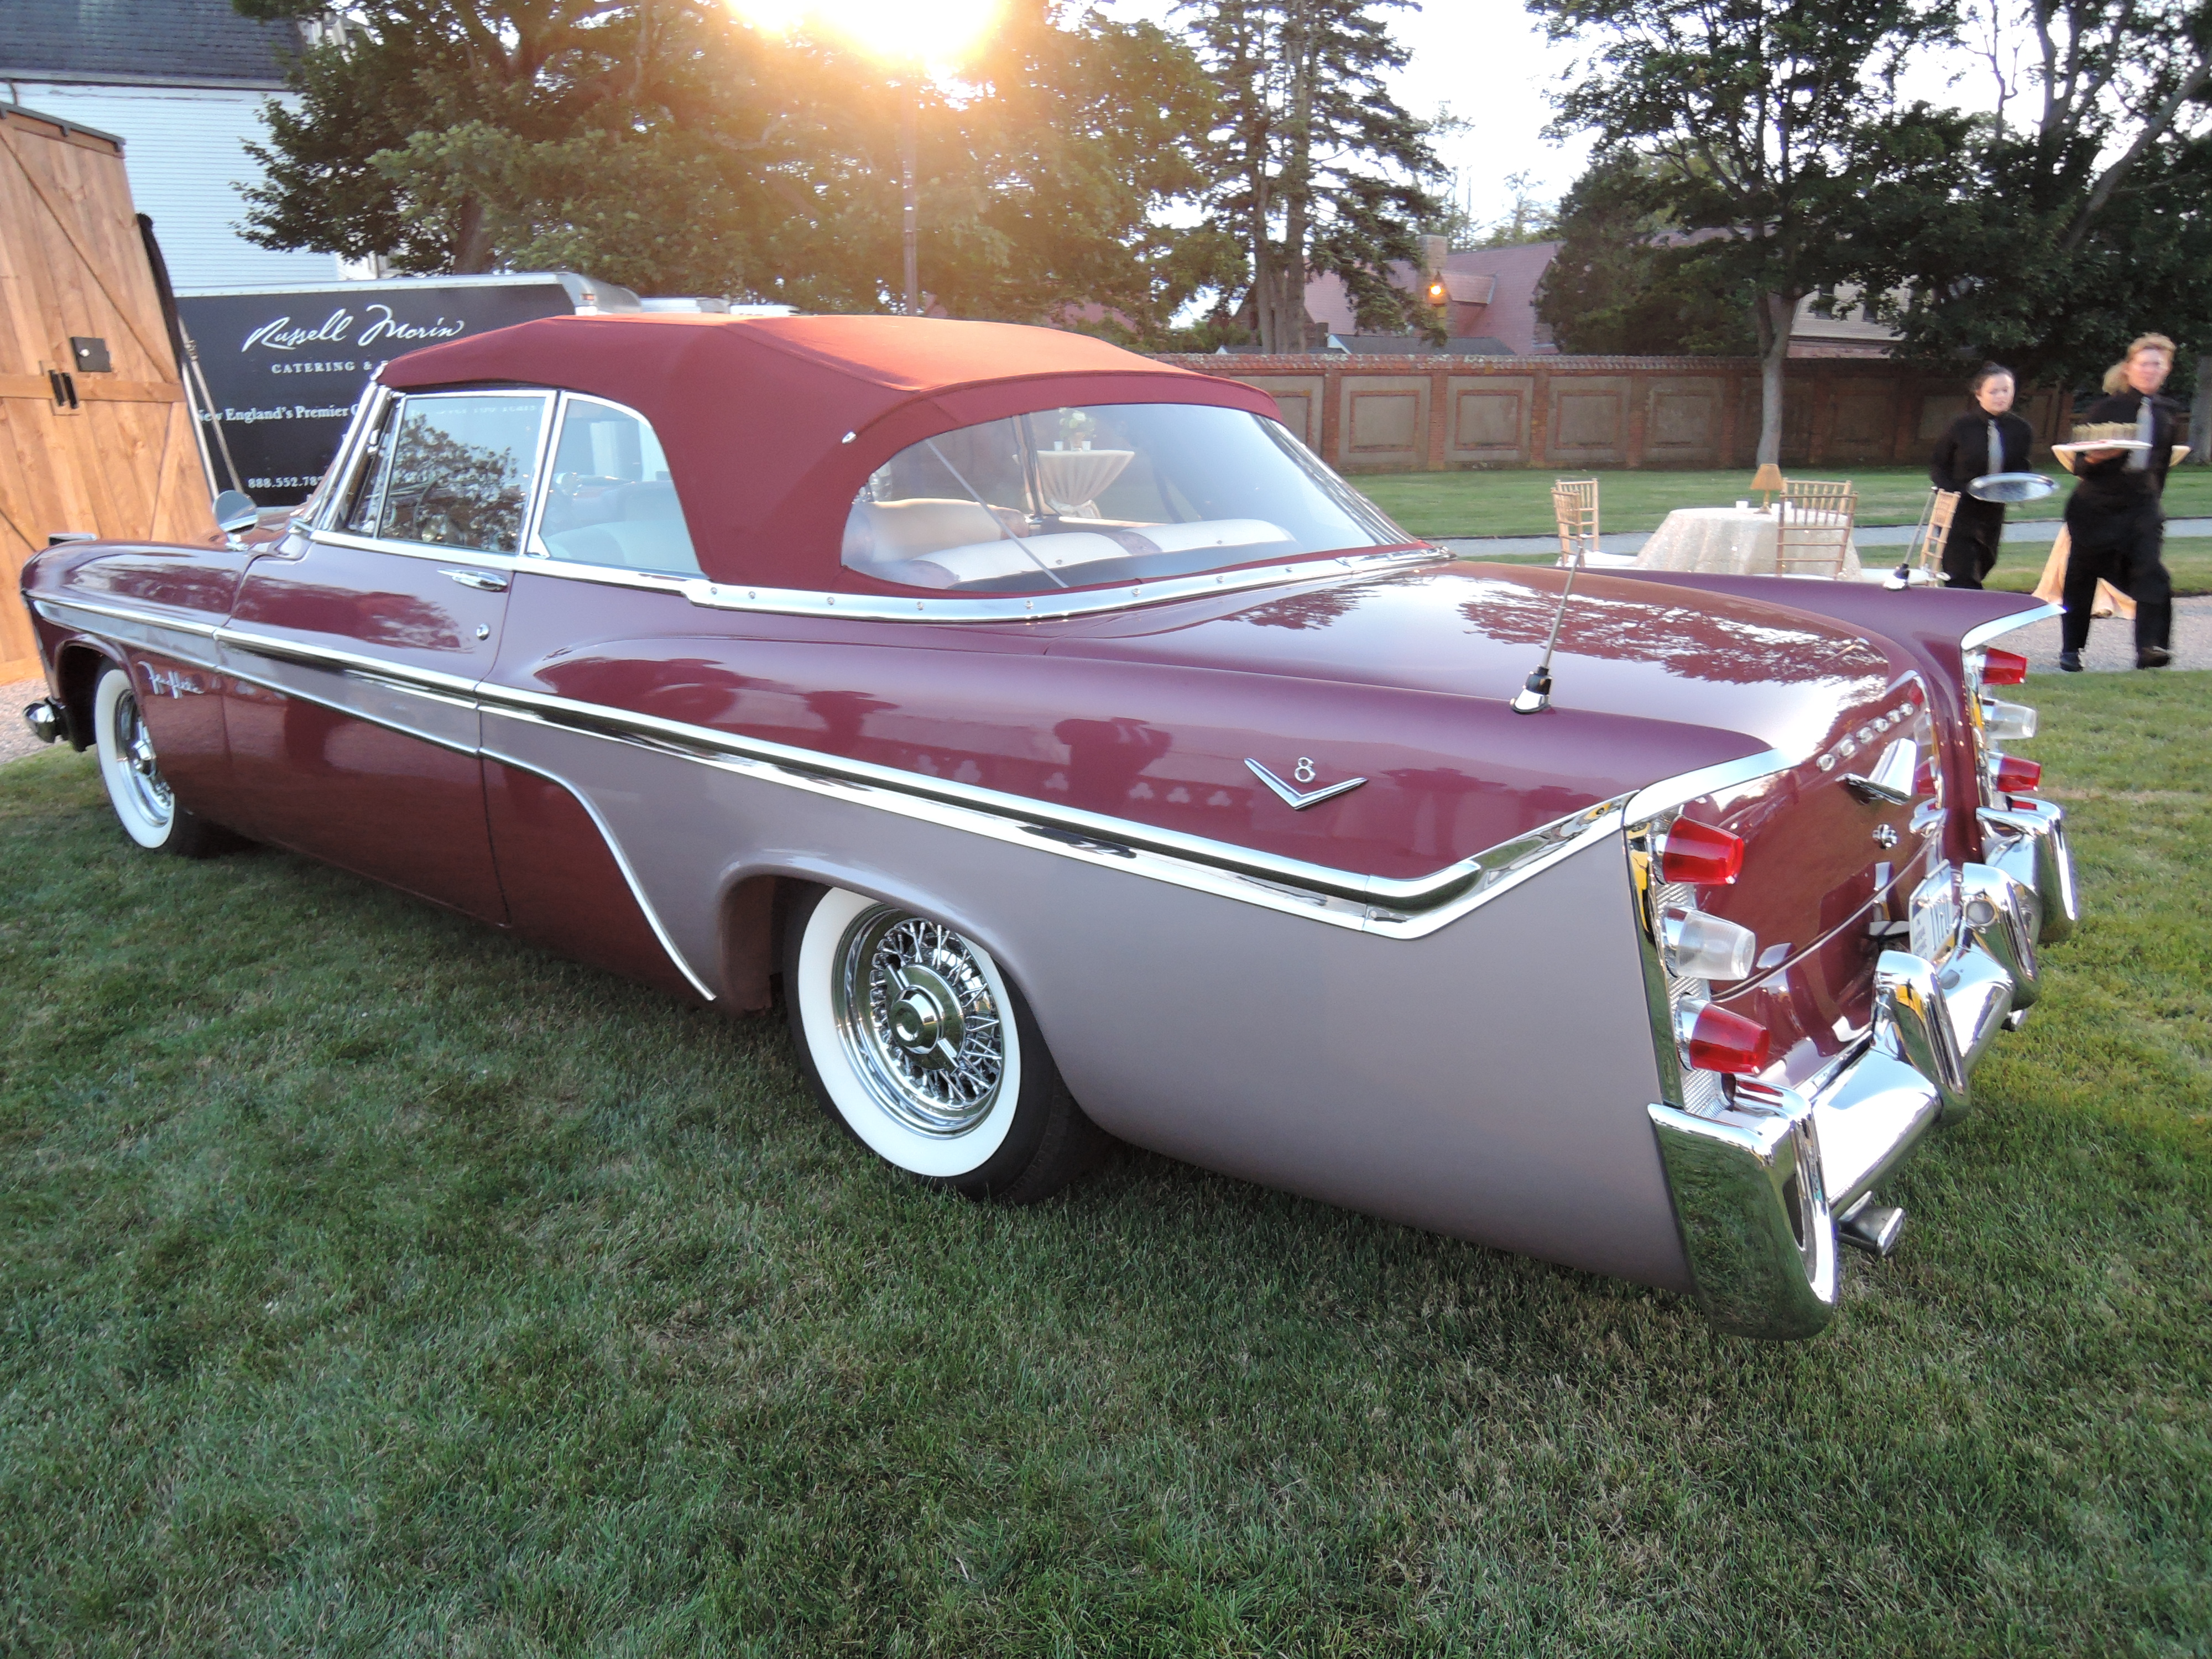 red 1956 DeSoto Fireflite - Audrain Auto Museum Gala 2017